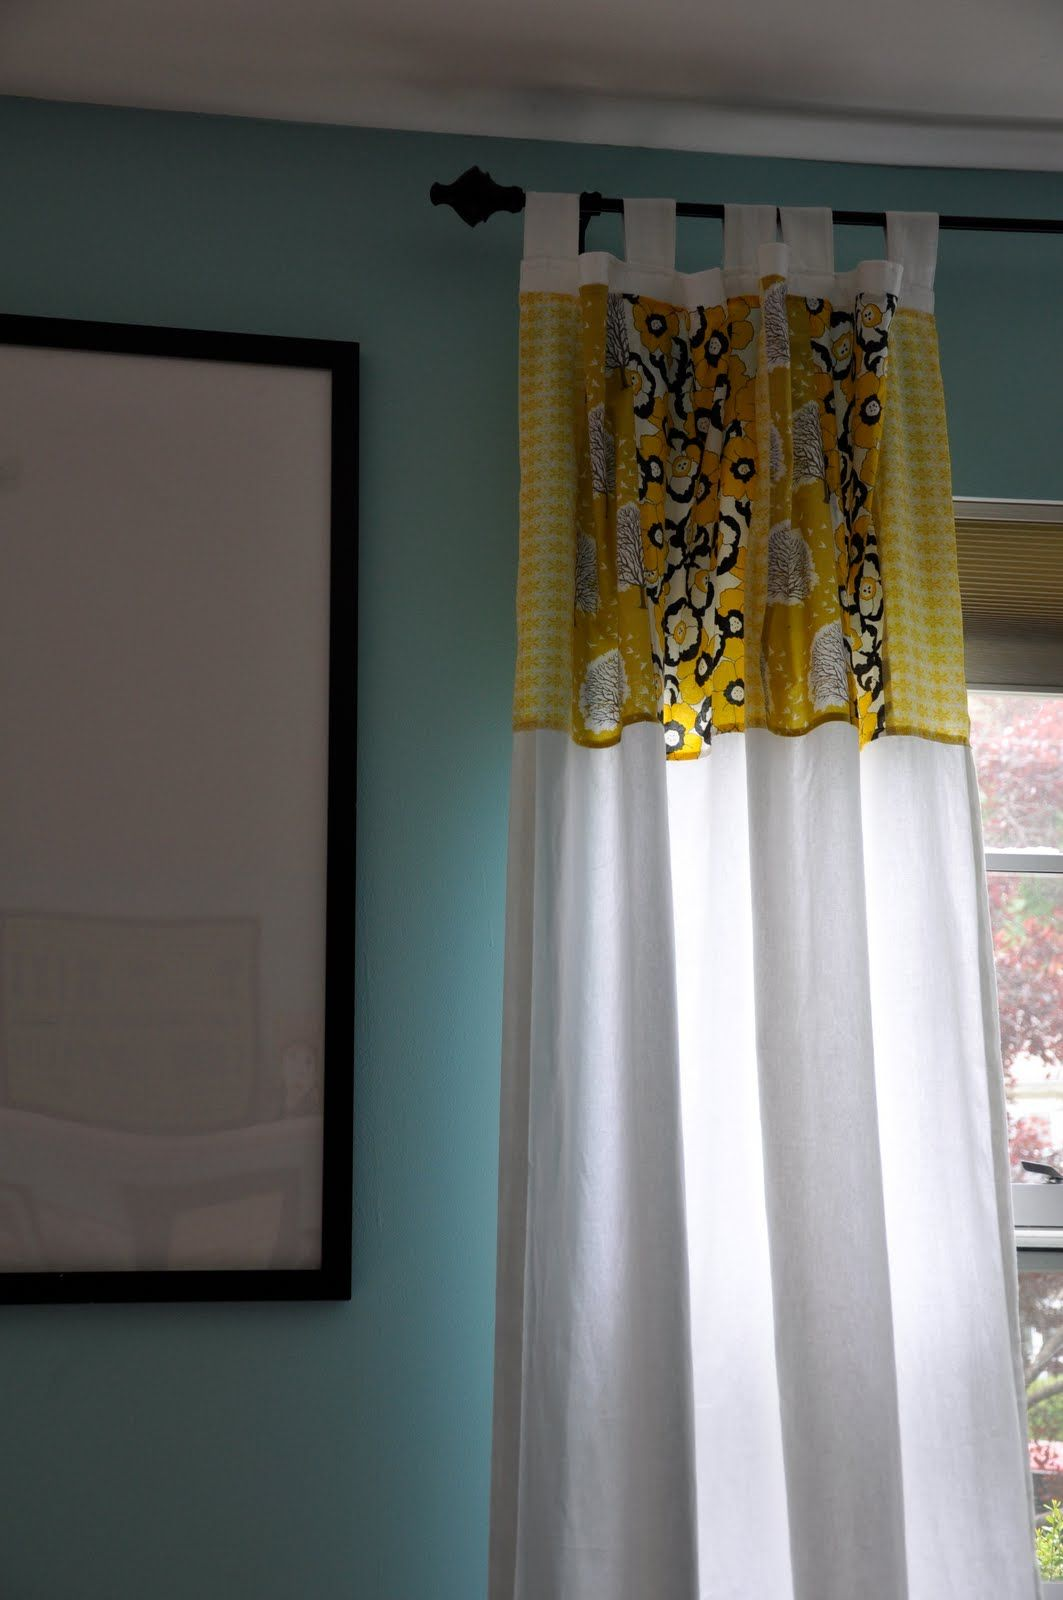 20 Anno Luv Panel Curtain Ikea With Images: Little Bit Funky: 20 Minute Crafter